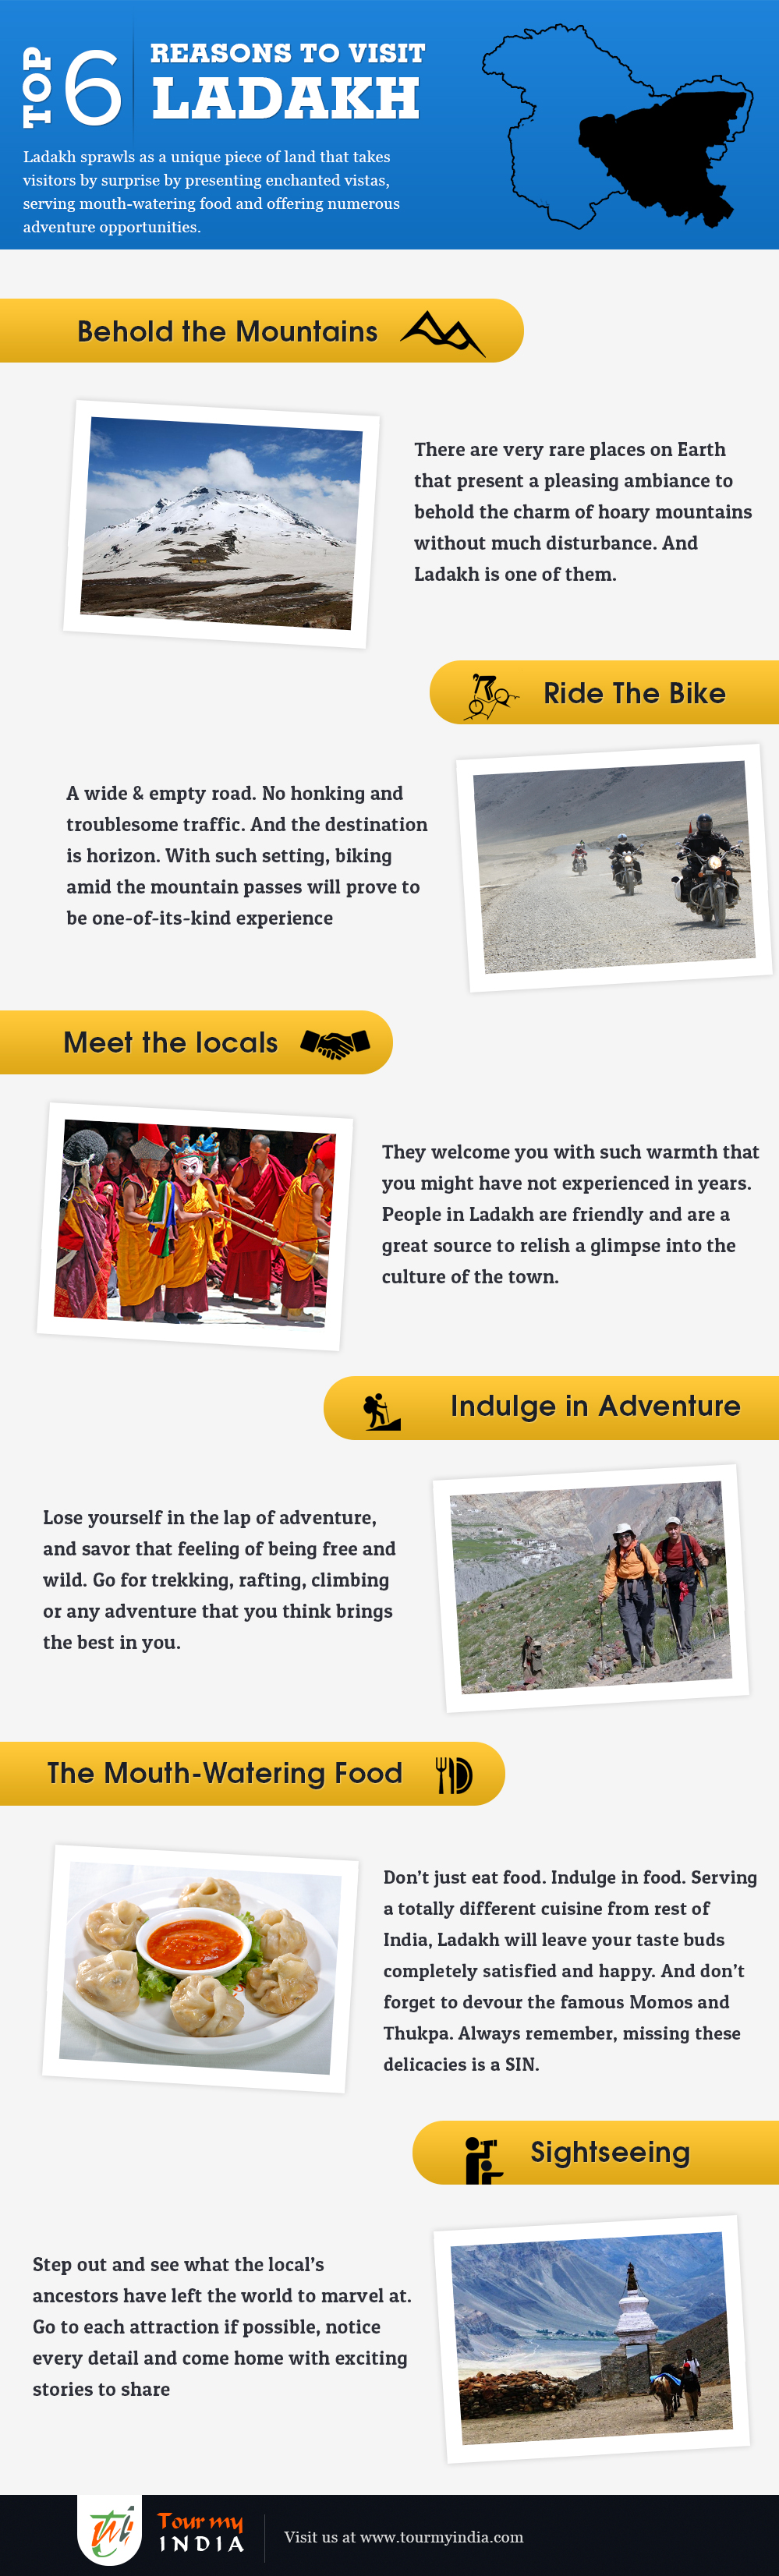 6 Reasons to visit Ladakh